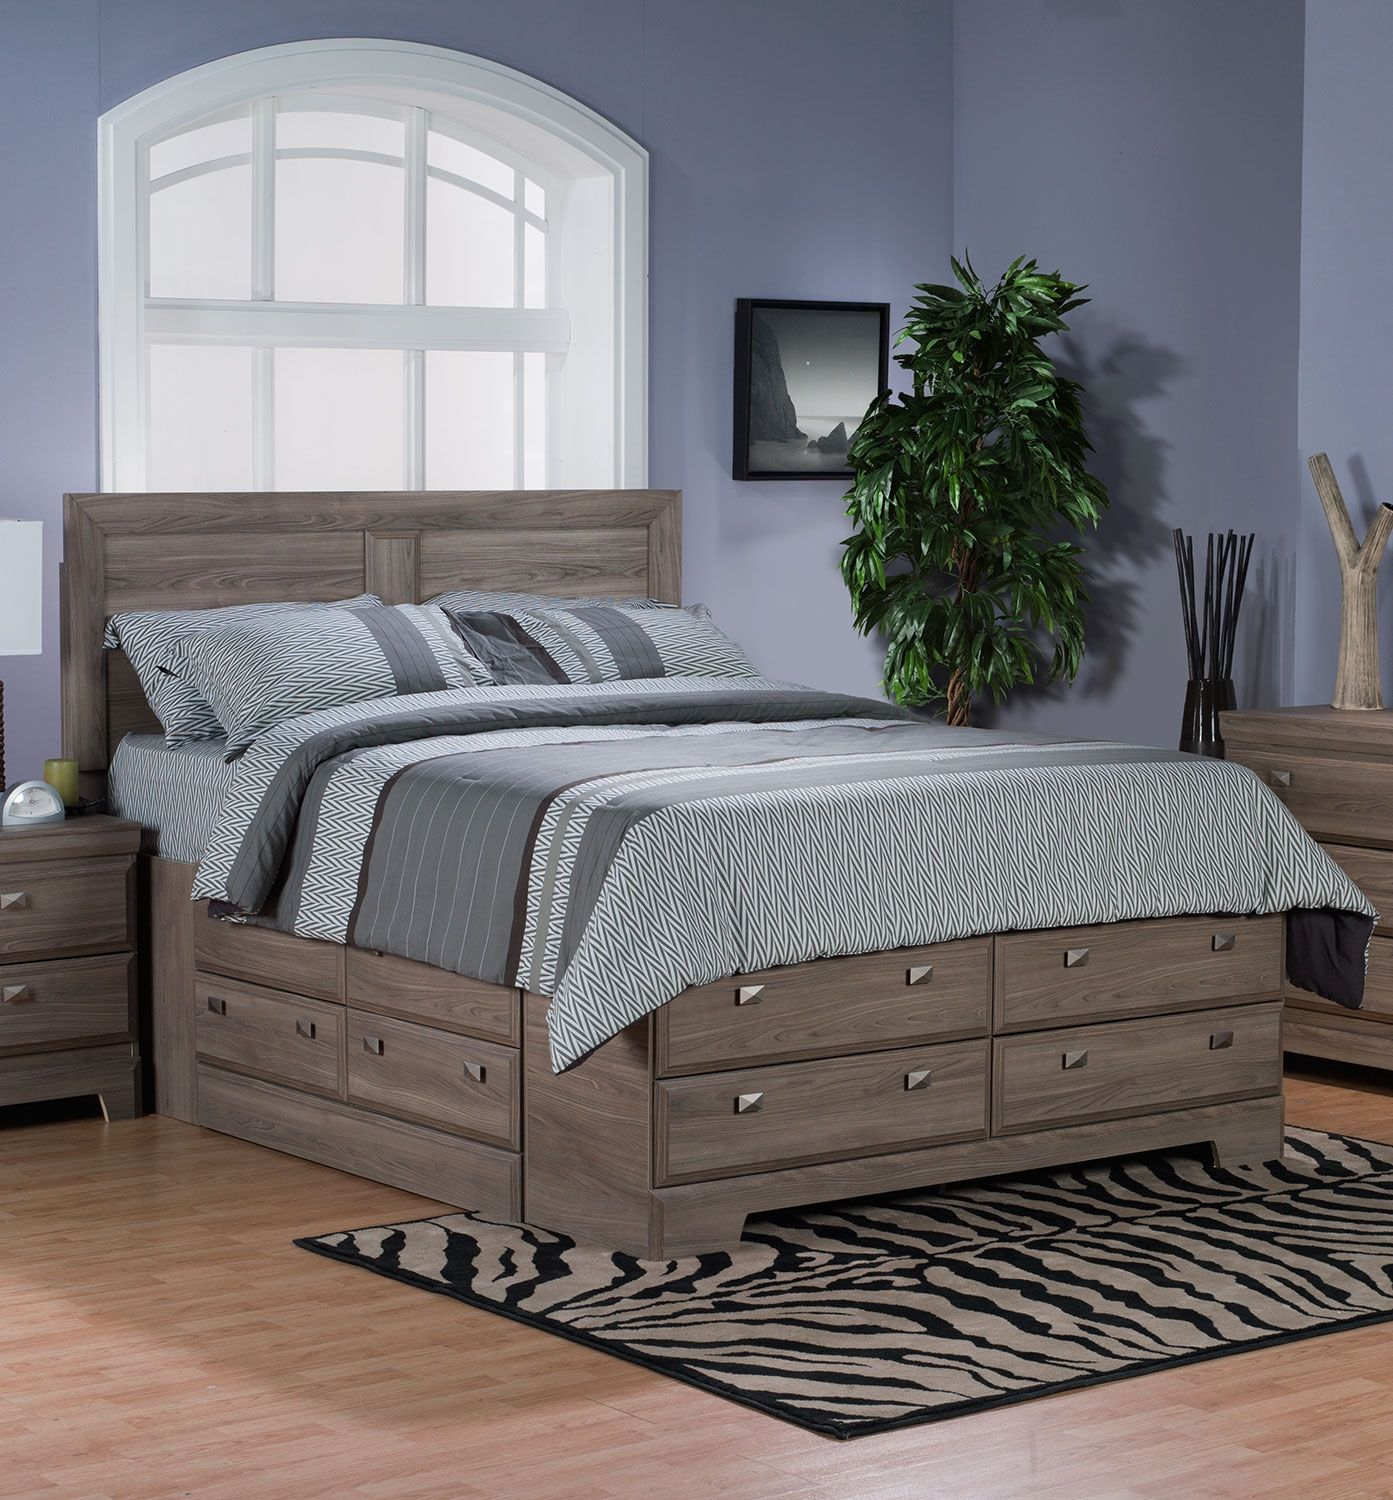 Yorkdale Light Queen Storage Bed  Full bed with storage, Storage